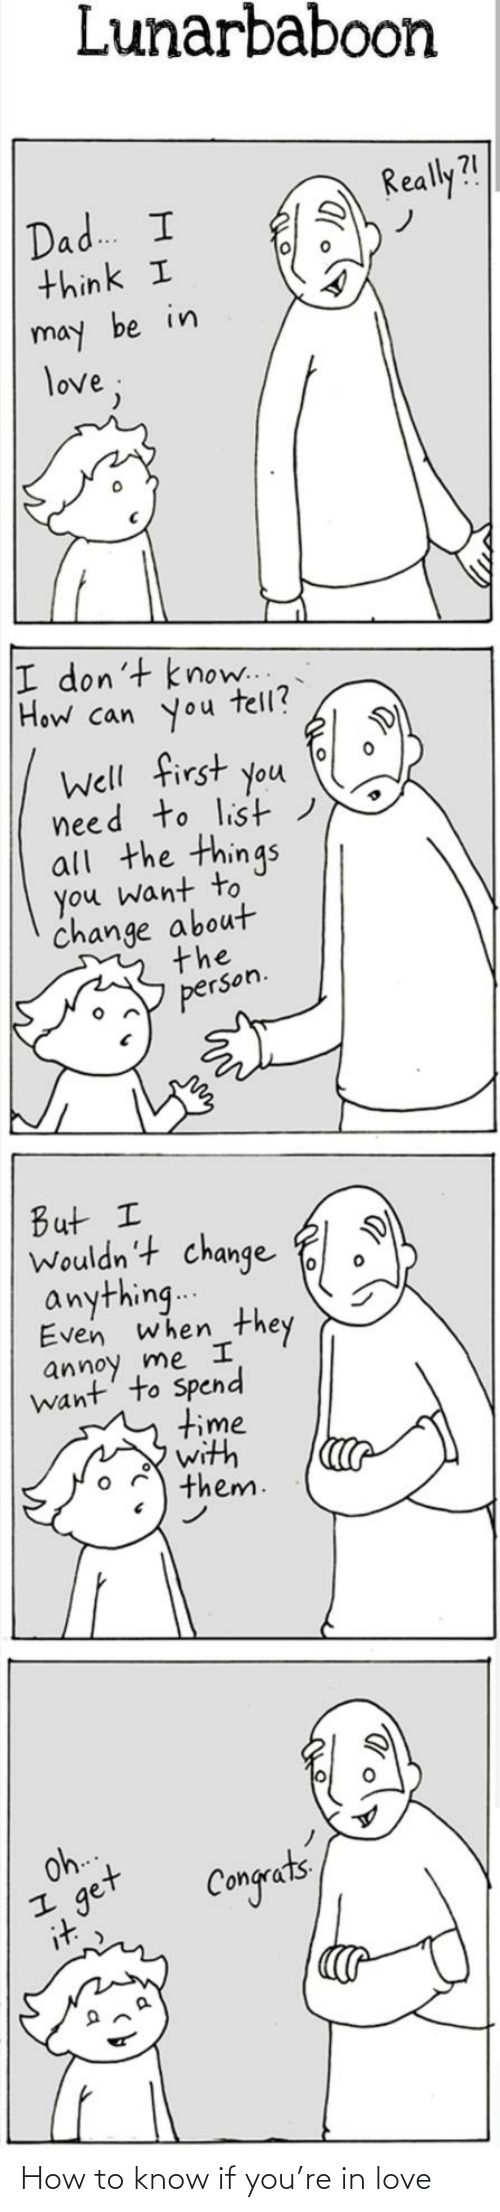 Think I: Lunarbaboon  Really?!  Dad. I  think I  may be in  love;  I don't know..  How can you  tell?  Well first you  need to list)  all the things  you want to  change about  the  person.  But I  Wouldn't change  anything..  Even when  they  annoy me I  want' to Spend  time  with  them.  Oh.  get  it  Congets How to know if you're in love